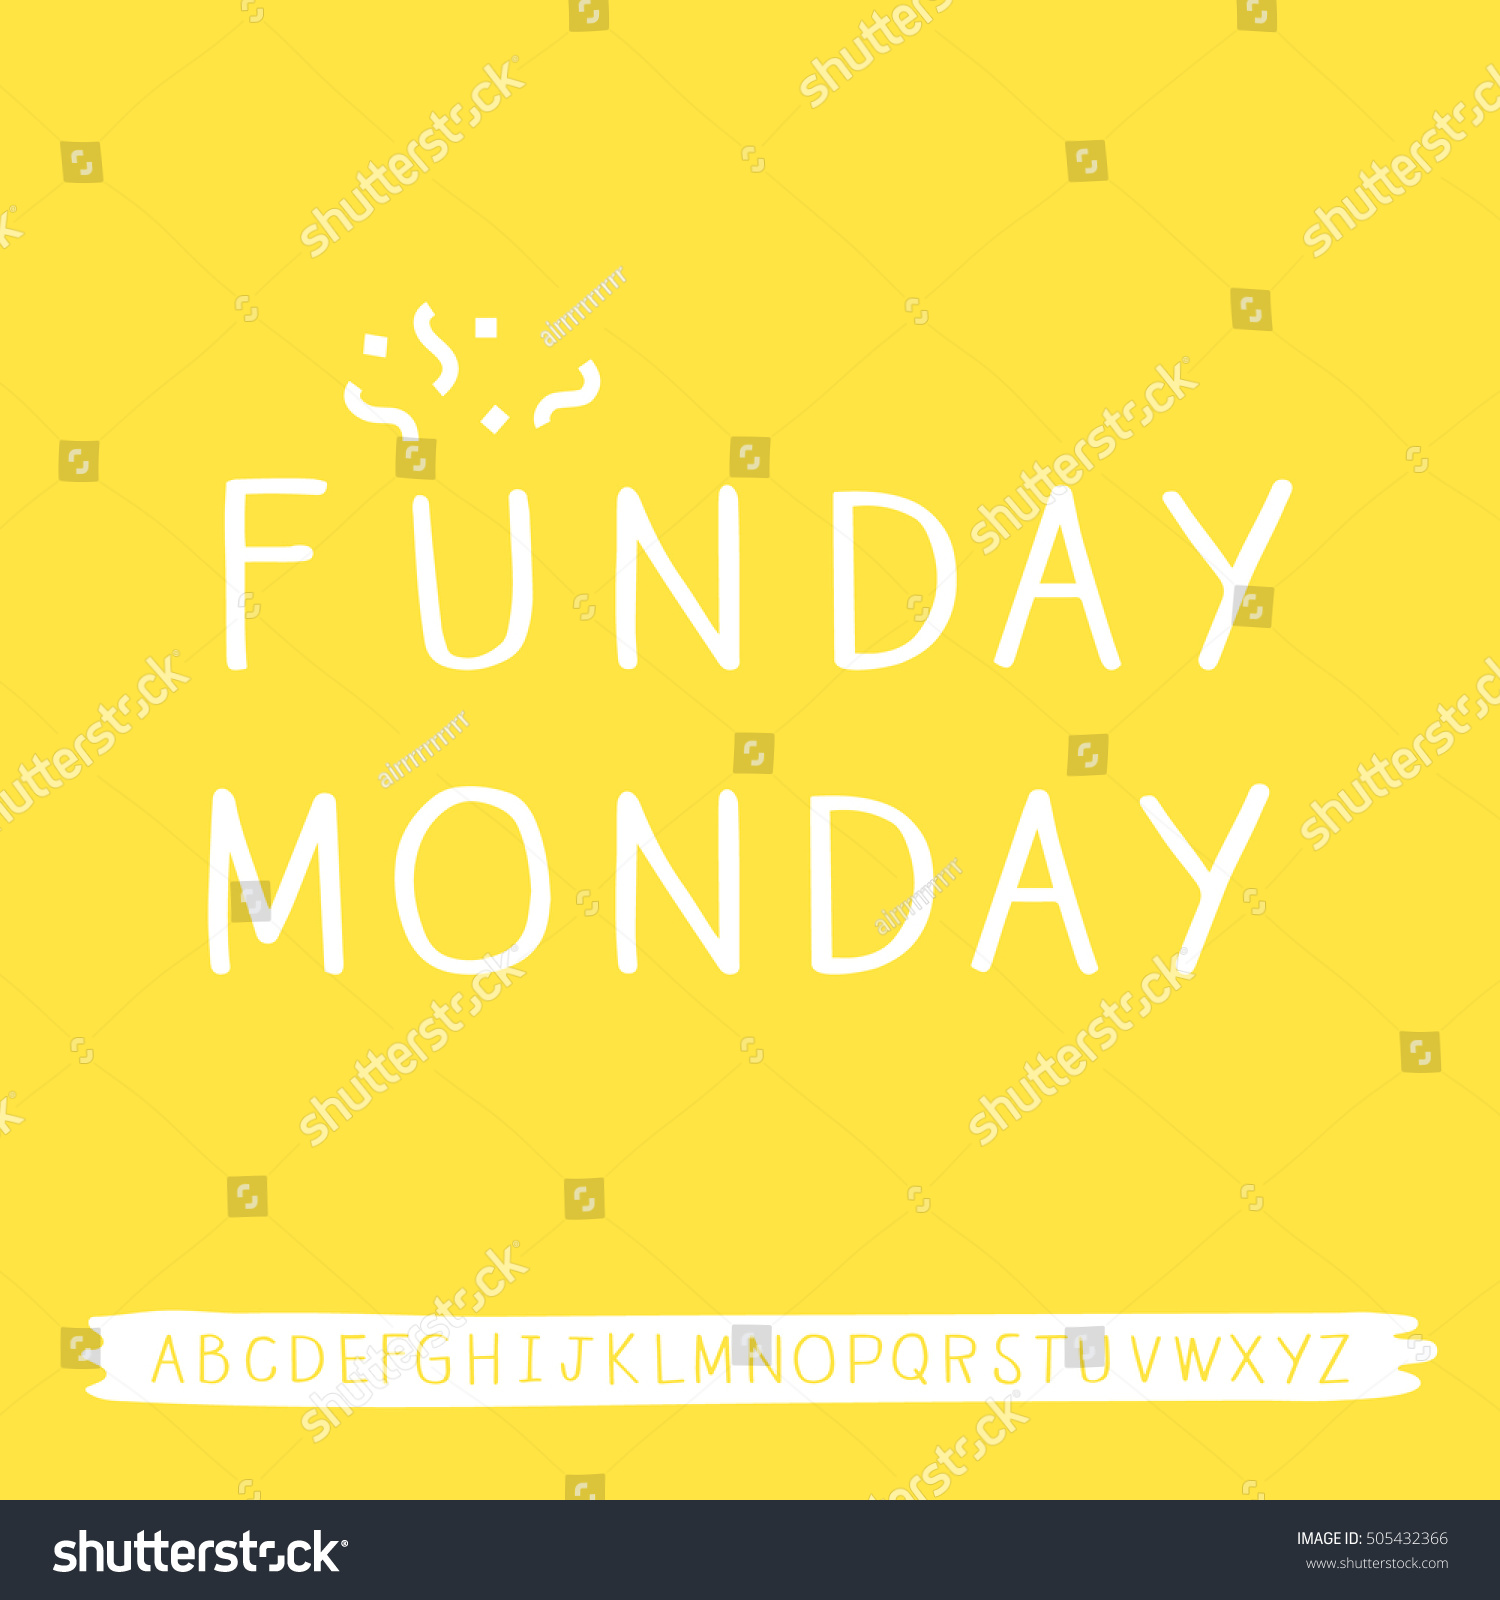 Monday quotes cute handwritten font isolated stock vector monday quotes with cute handwritten font isolated voltagebd Gallery